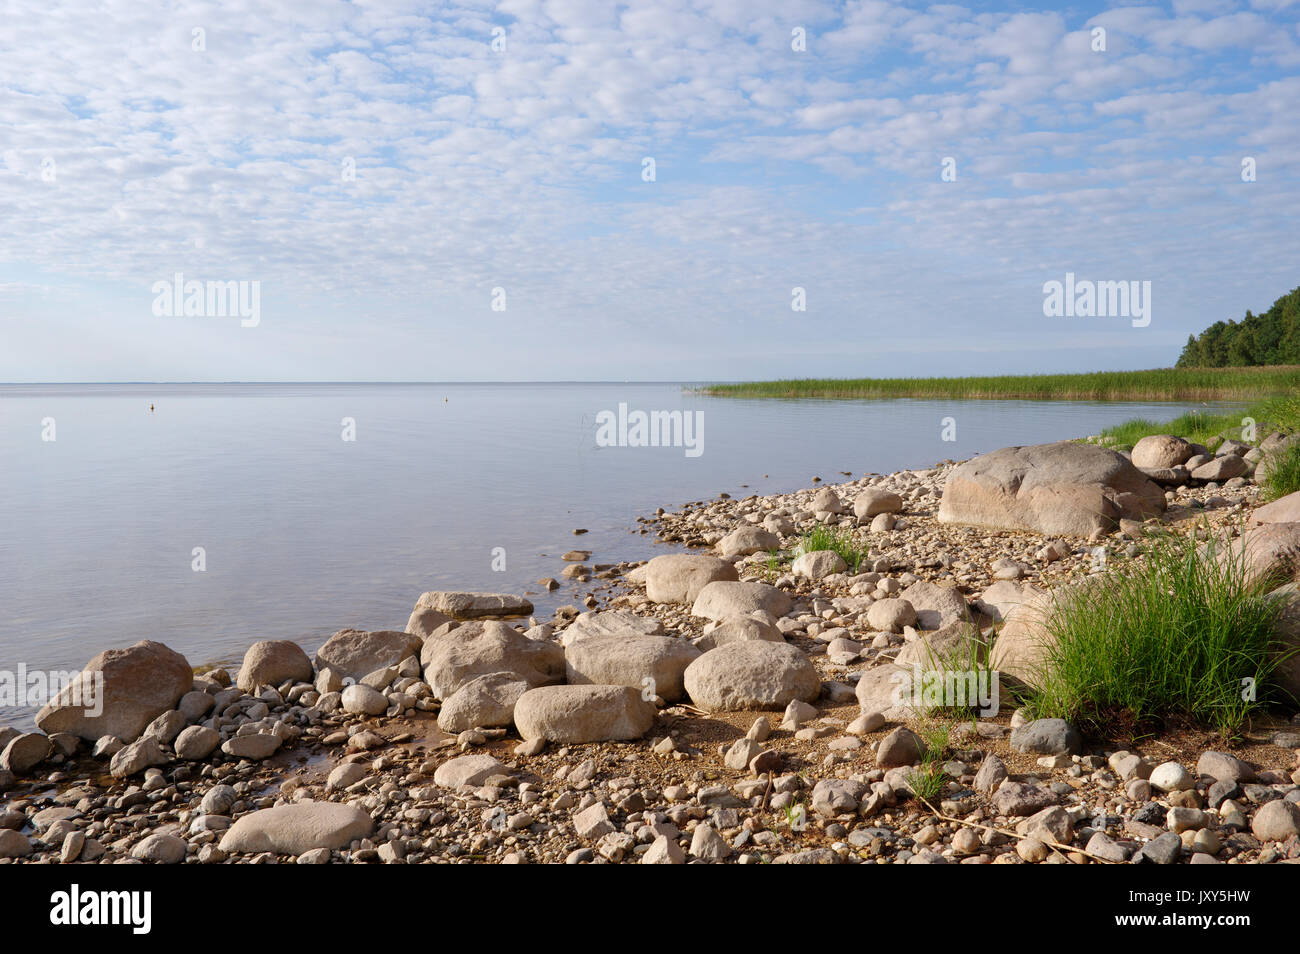 View to the Lake Võrtsjärv, Estonia 16.08.2017 - Stock Image